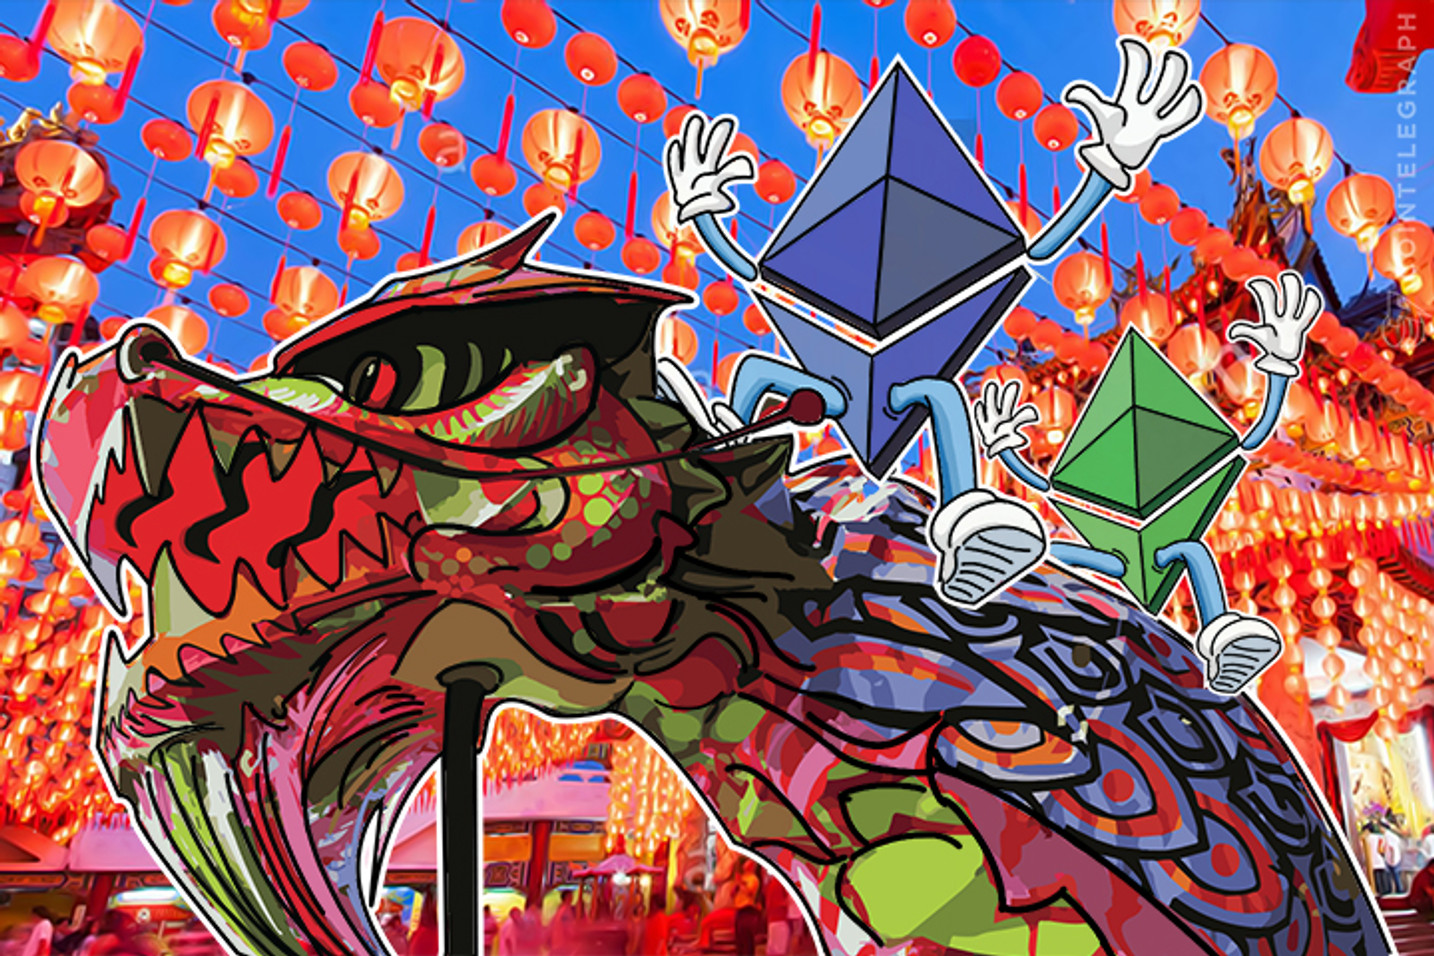 Major Chinese Bitcoin Exchange Lists Ethereum Classic Ahead of Ethereum